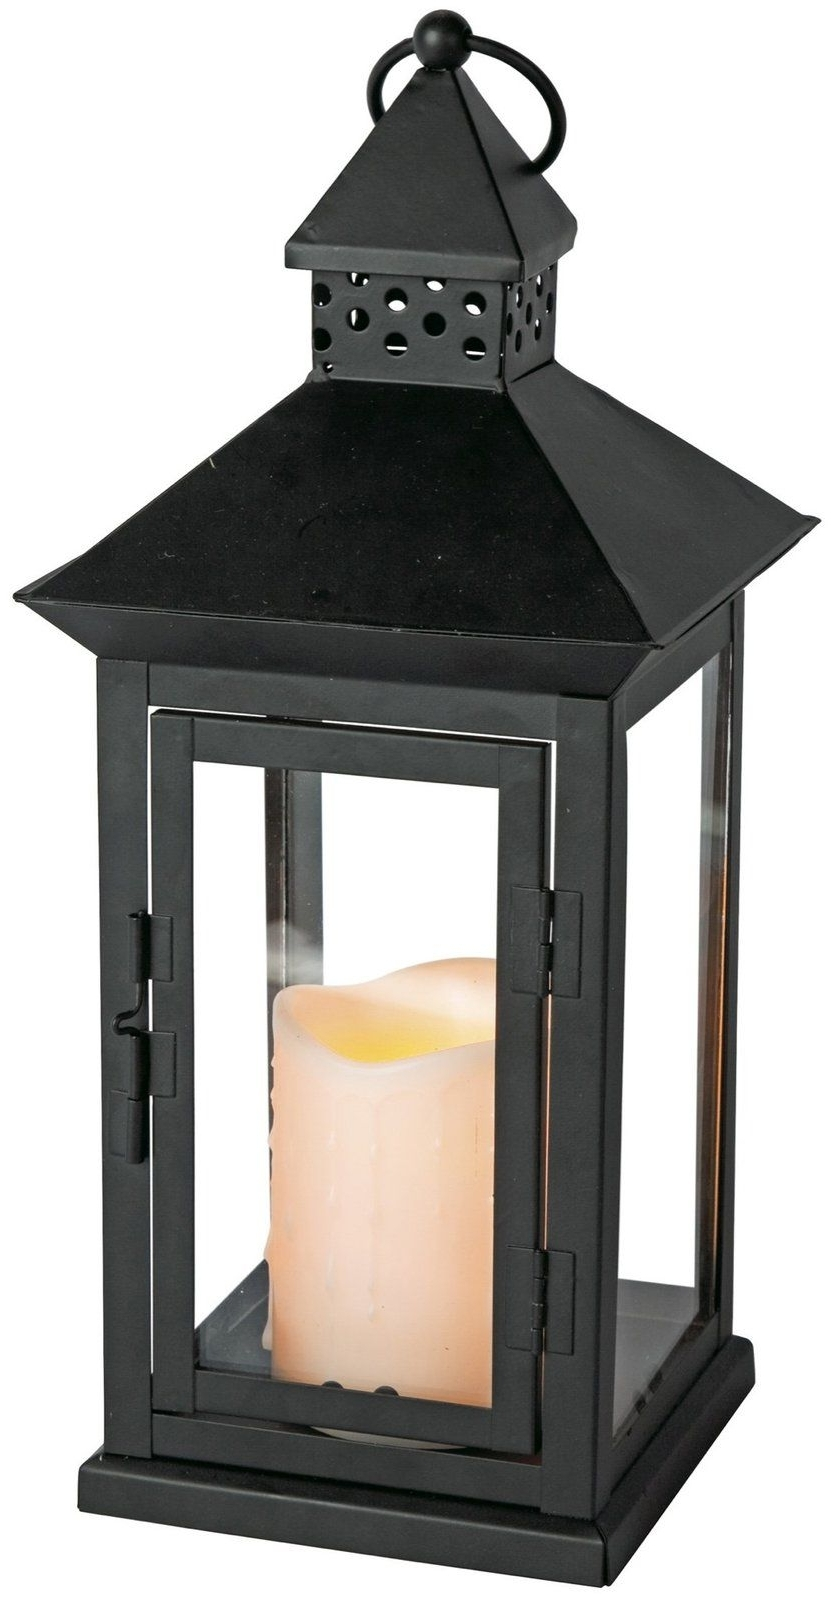 Widely Used Indoor Outdoor Flameless Candle Lantern W/ Timer, 8.5 X (View 10 of 20)